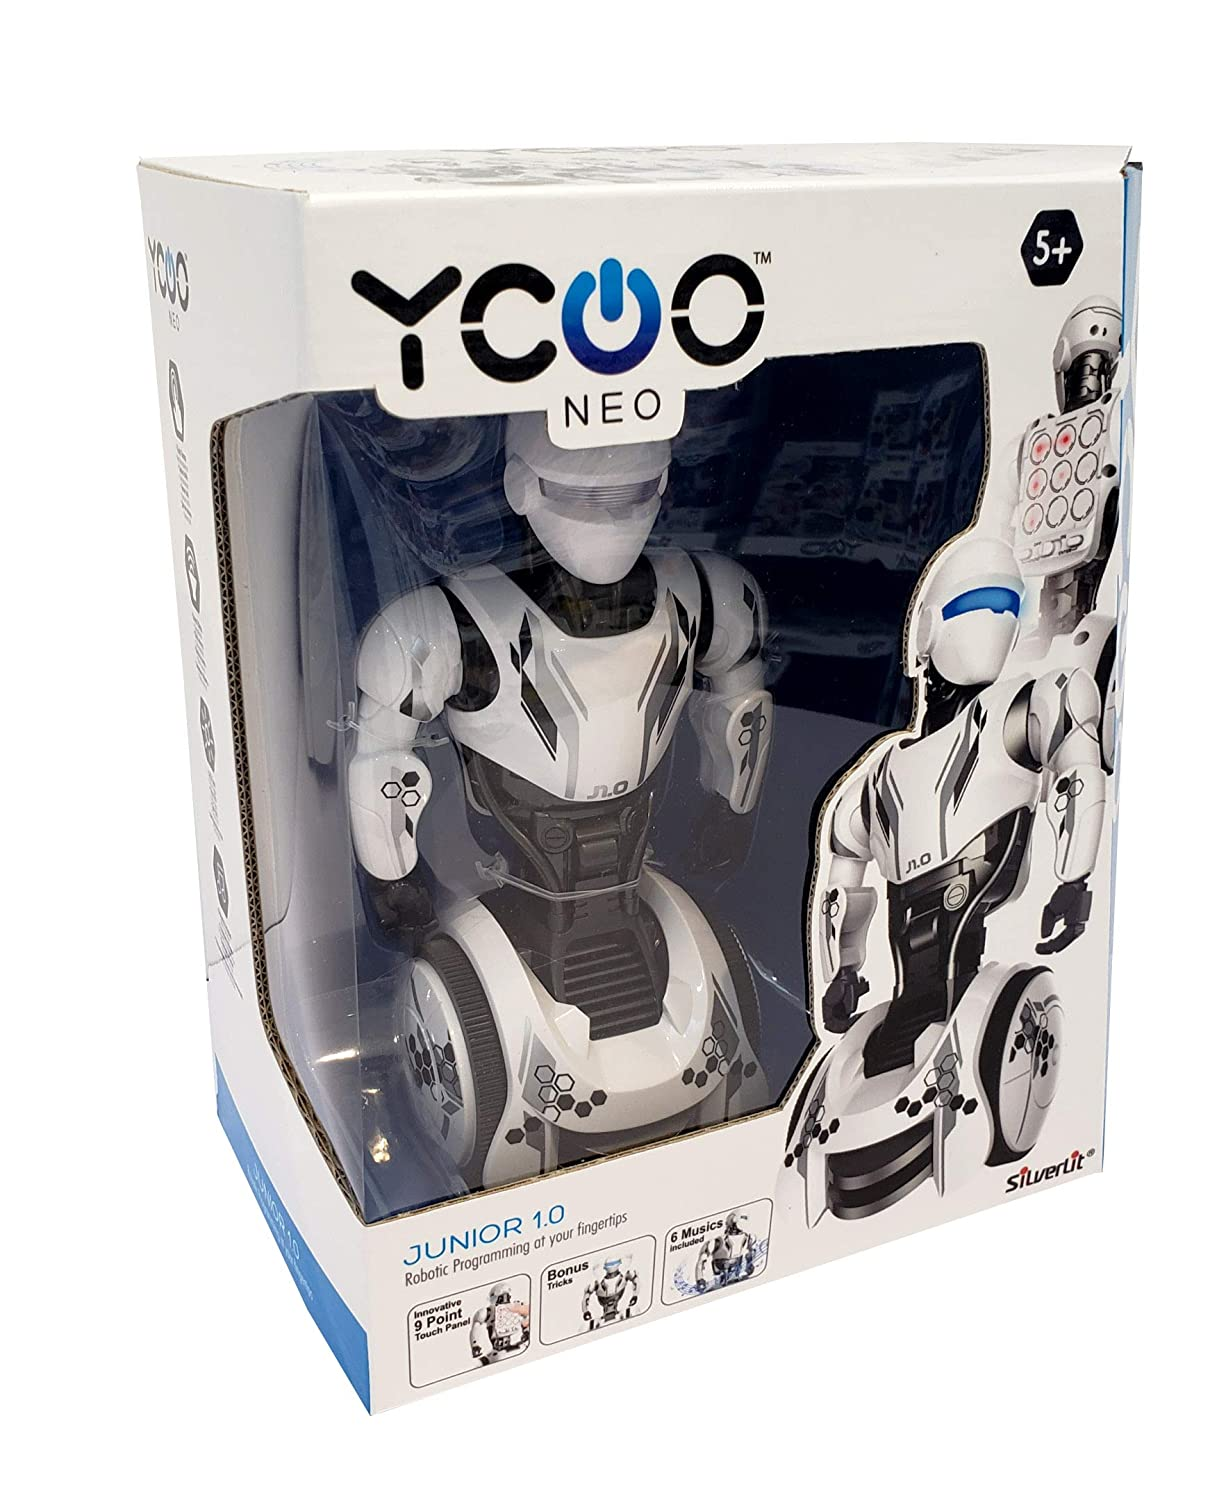 silverlit-ycoo-junior-1-0-robot-with-innovative-9-point-touch-panel-cool-led-eyes